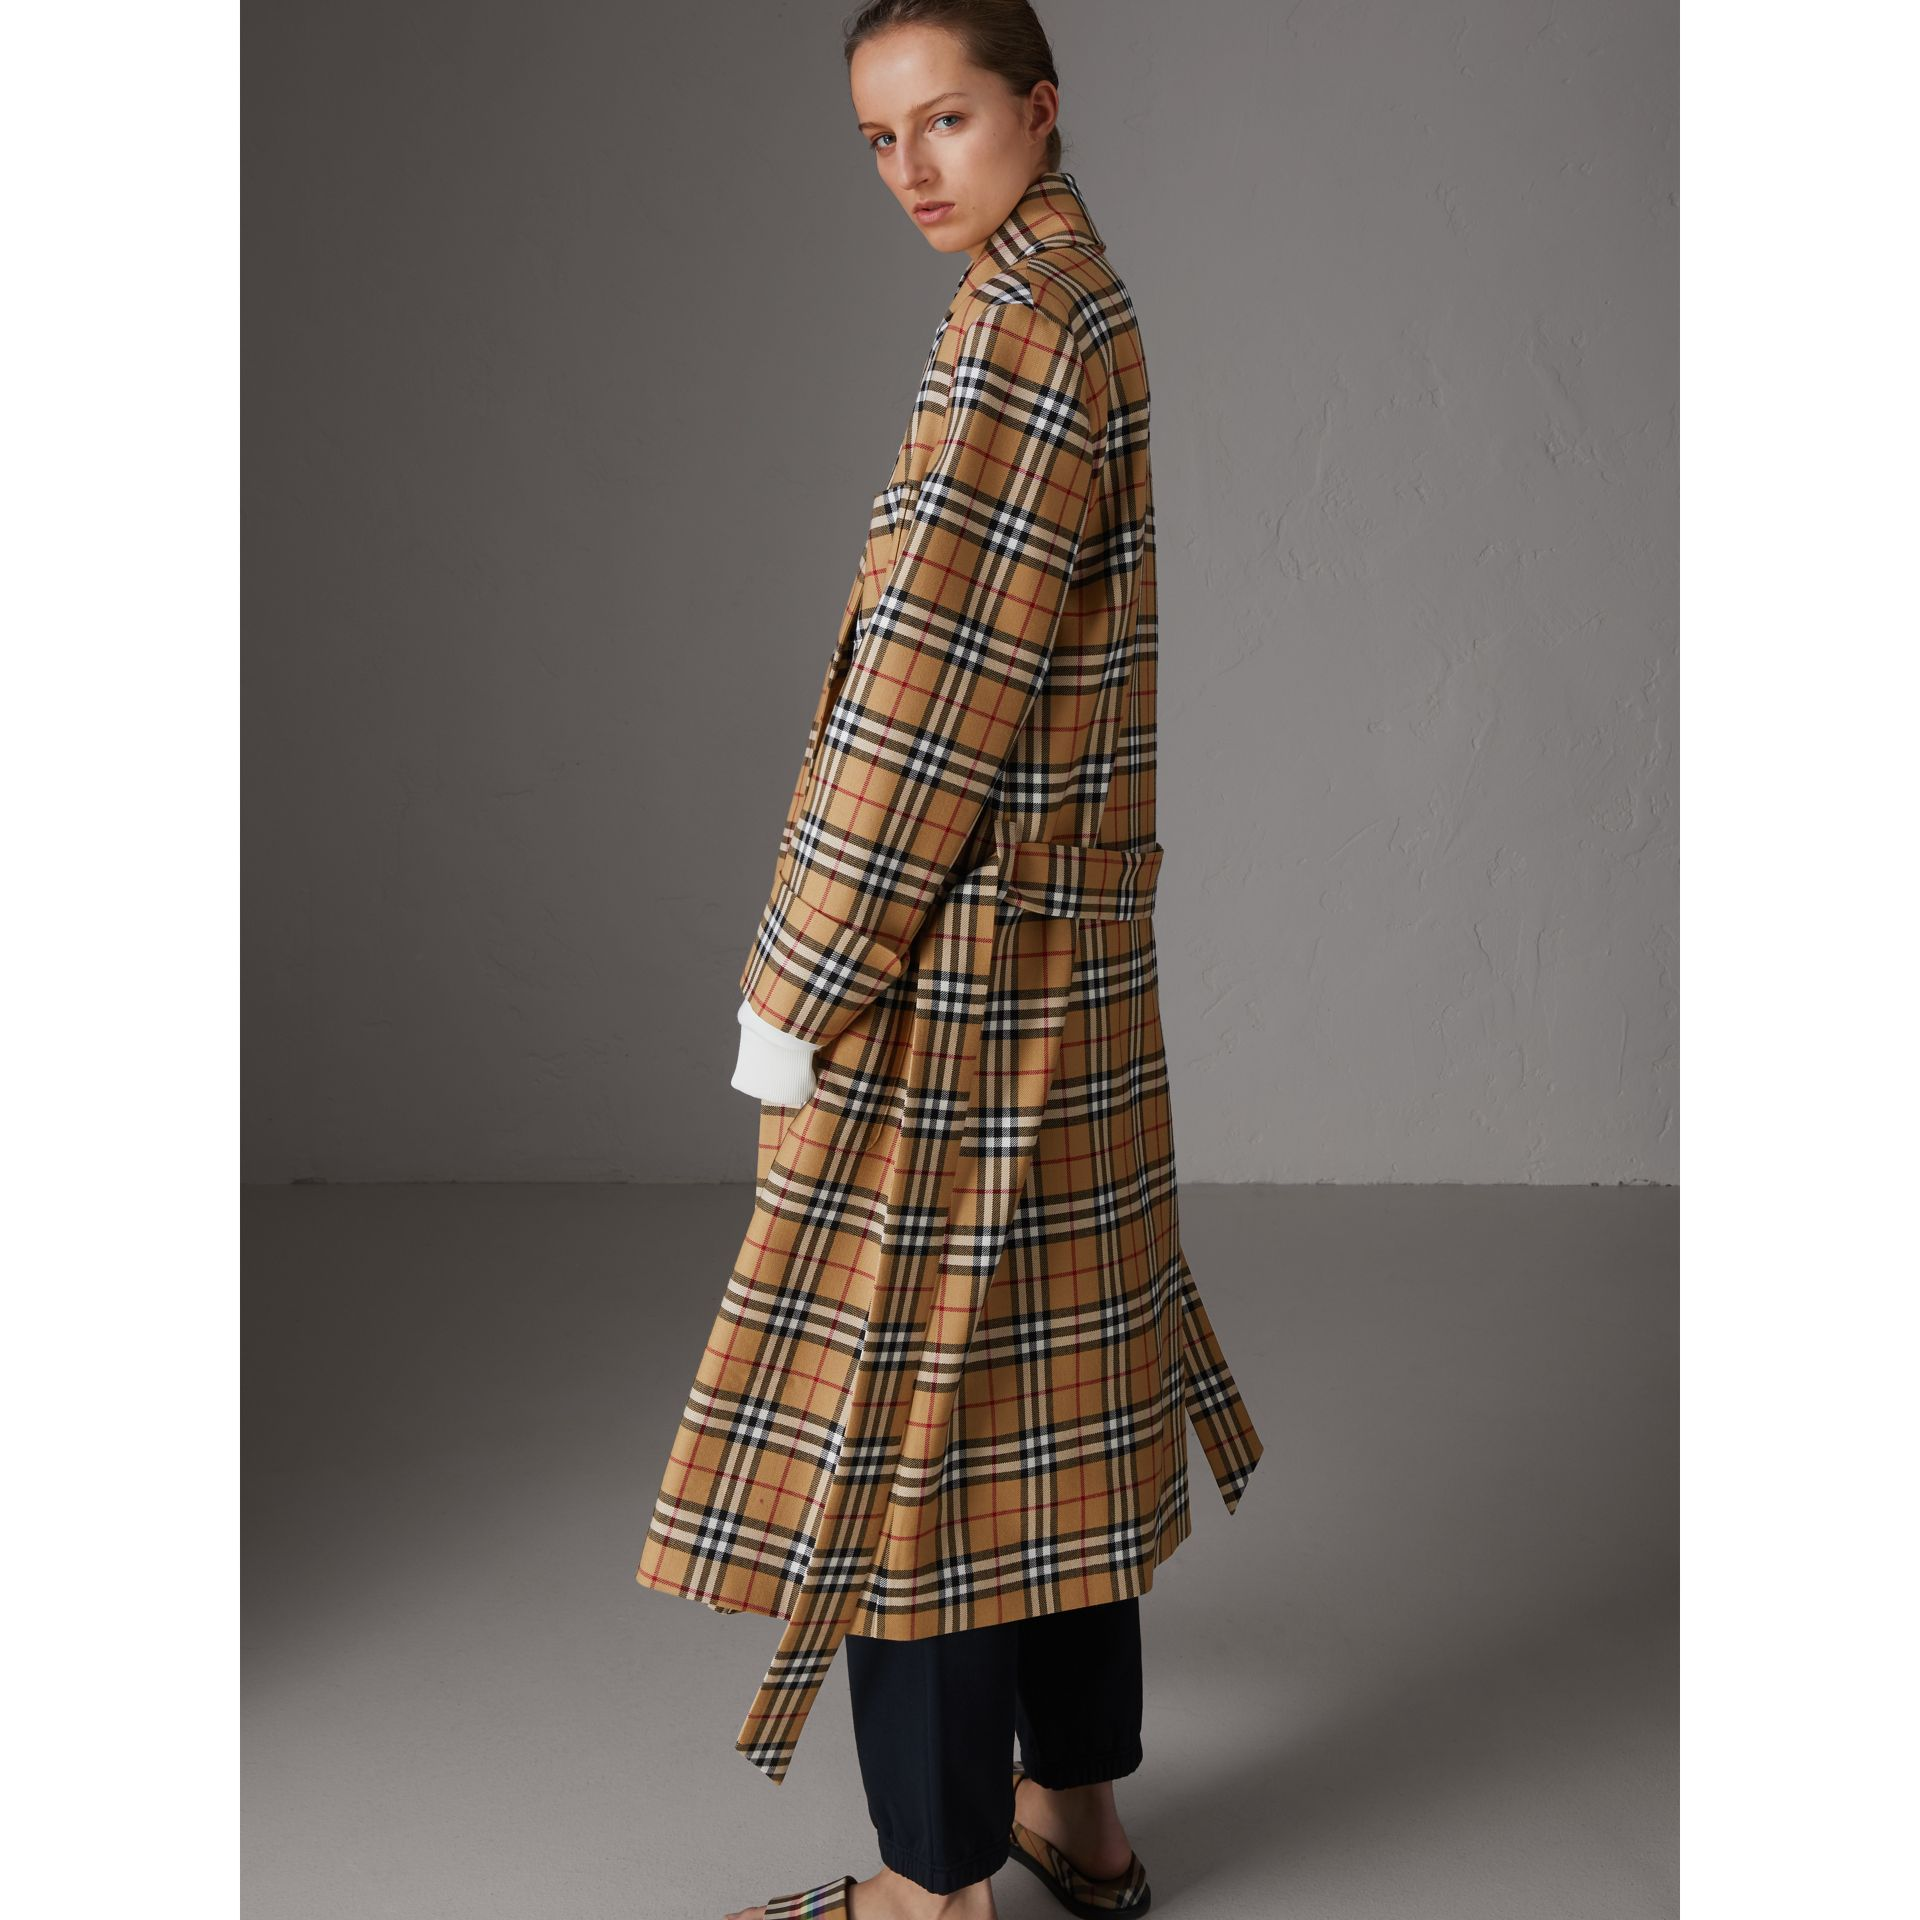 Manteau peignoir à motif Vintage check revisité (Jaune Antique) - Femme | Burberry - photo de la galerie 2